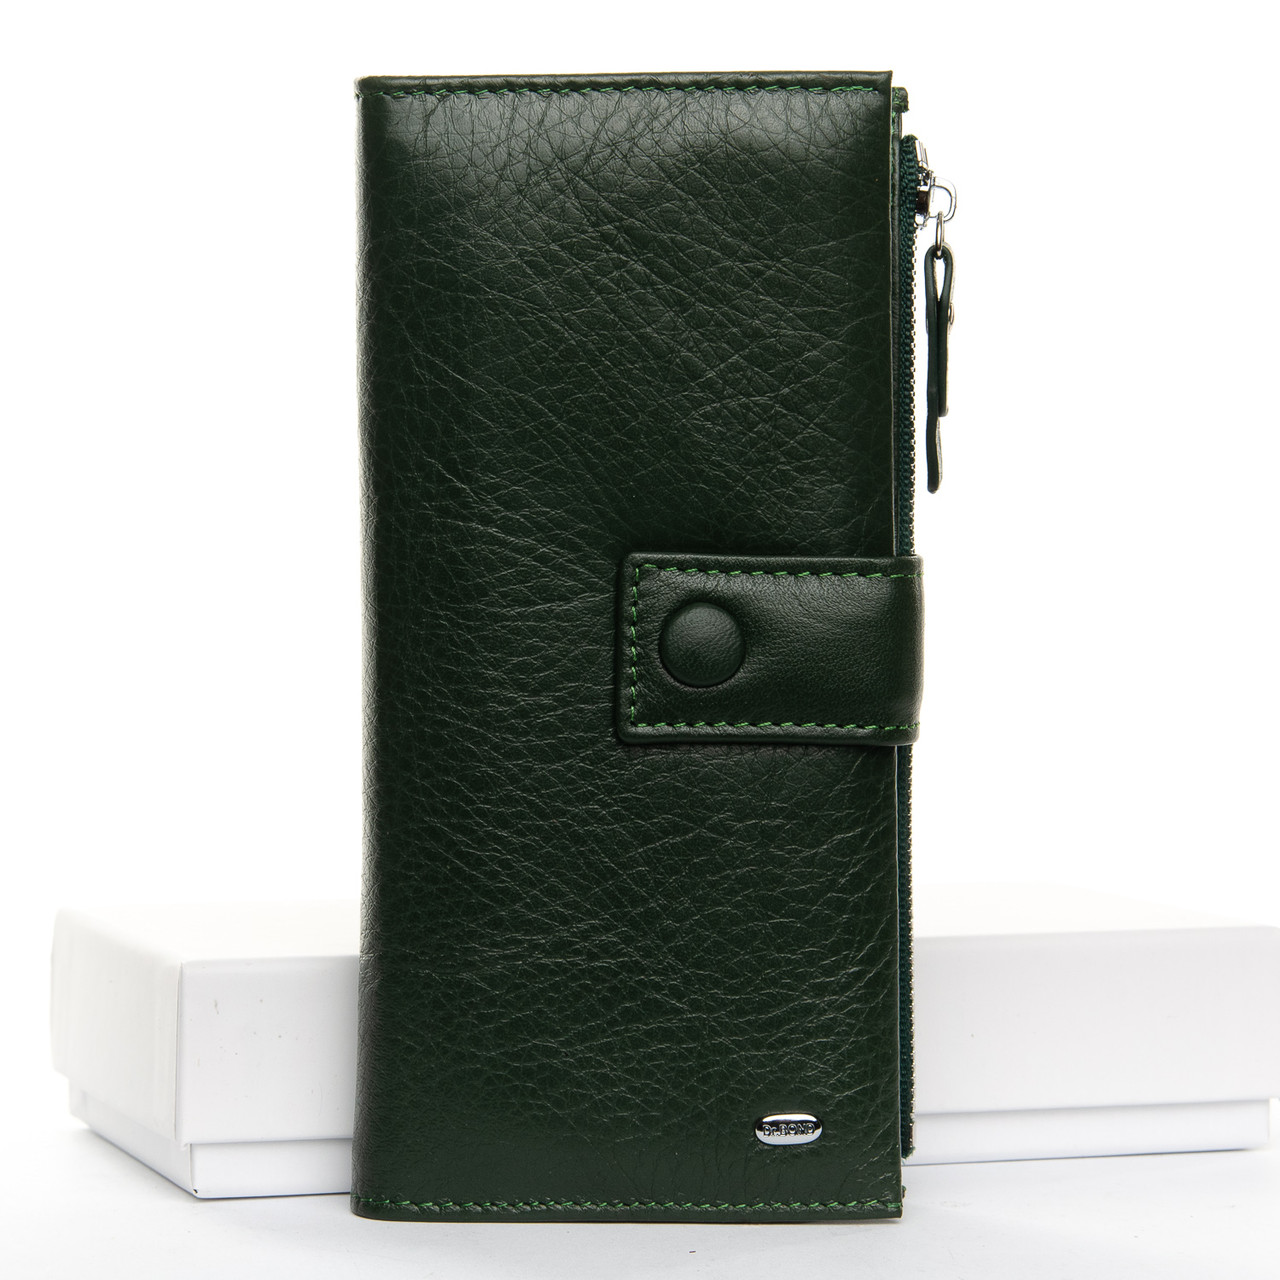 Кошелек Classic кожа DR. BOND 9,5*19*3 (WMB-1 dark-green)